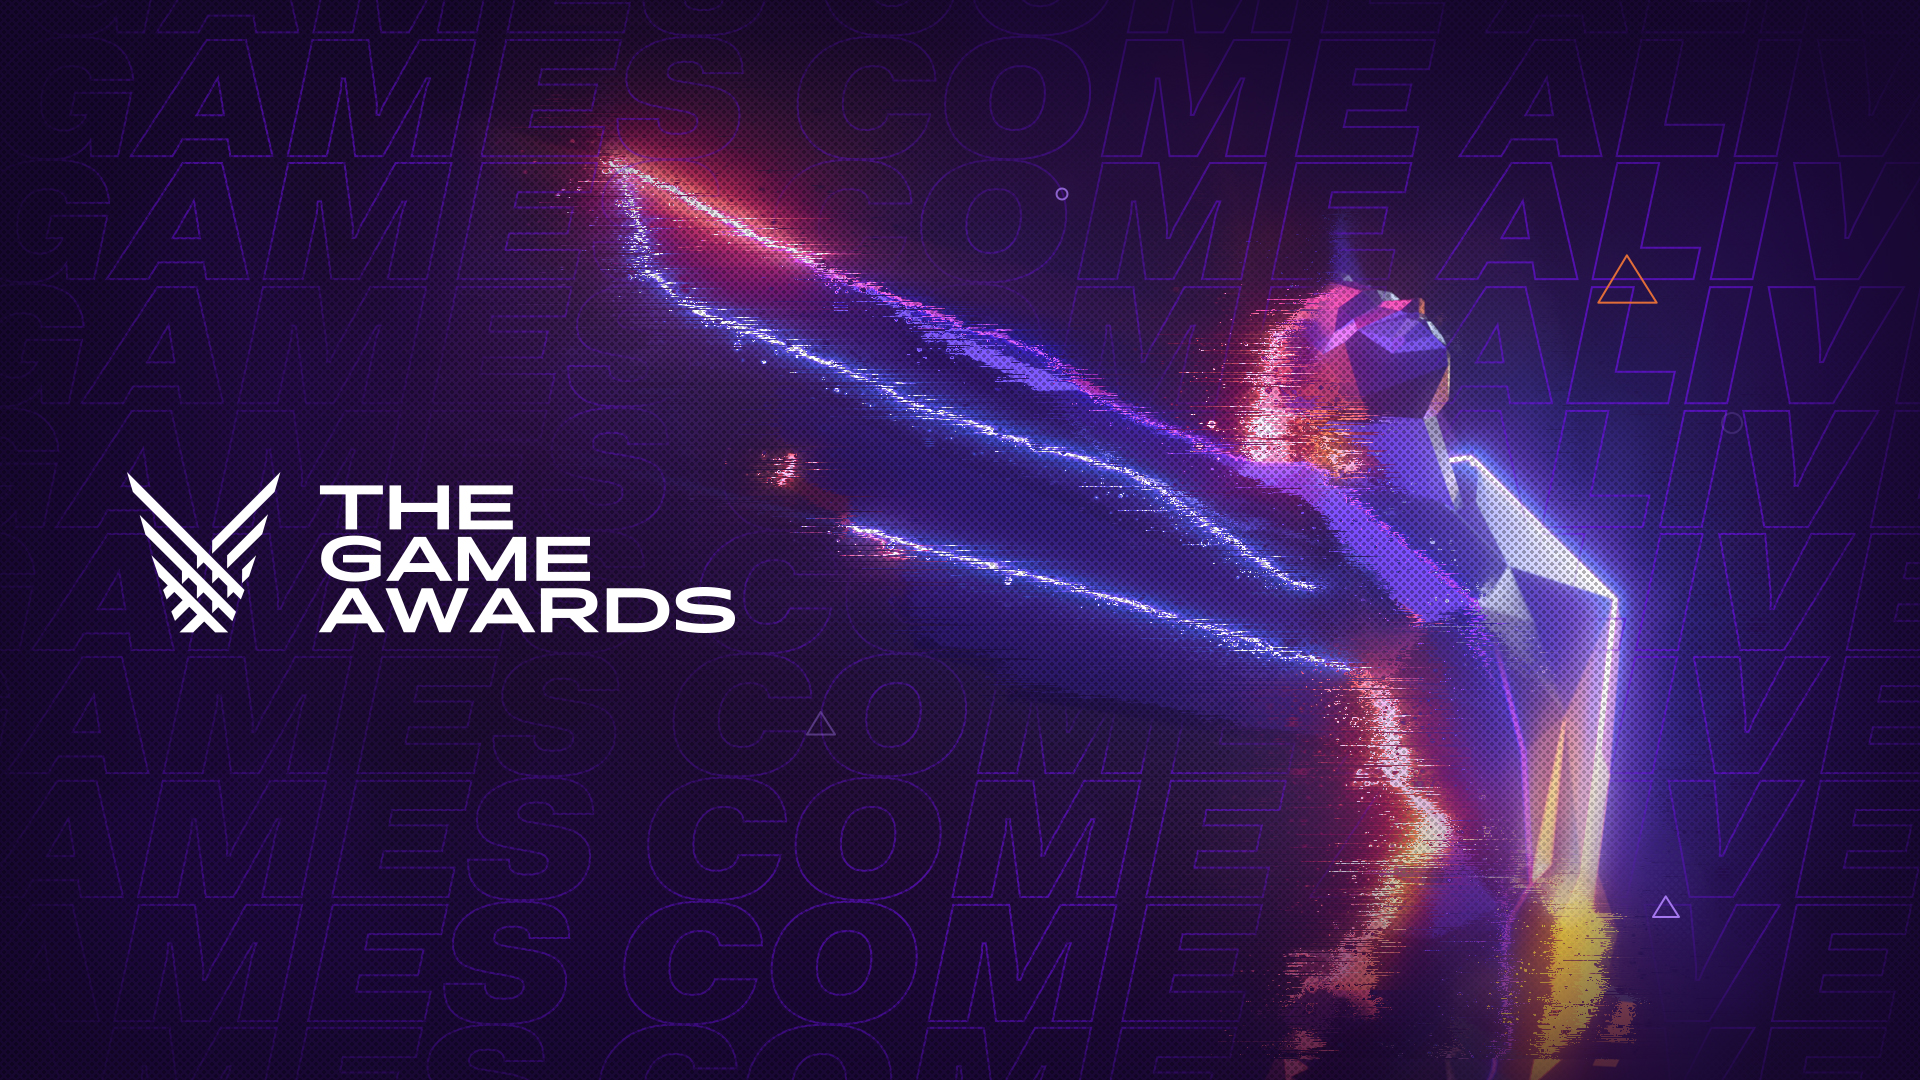 The Game Awards 2019